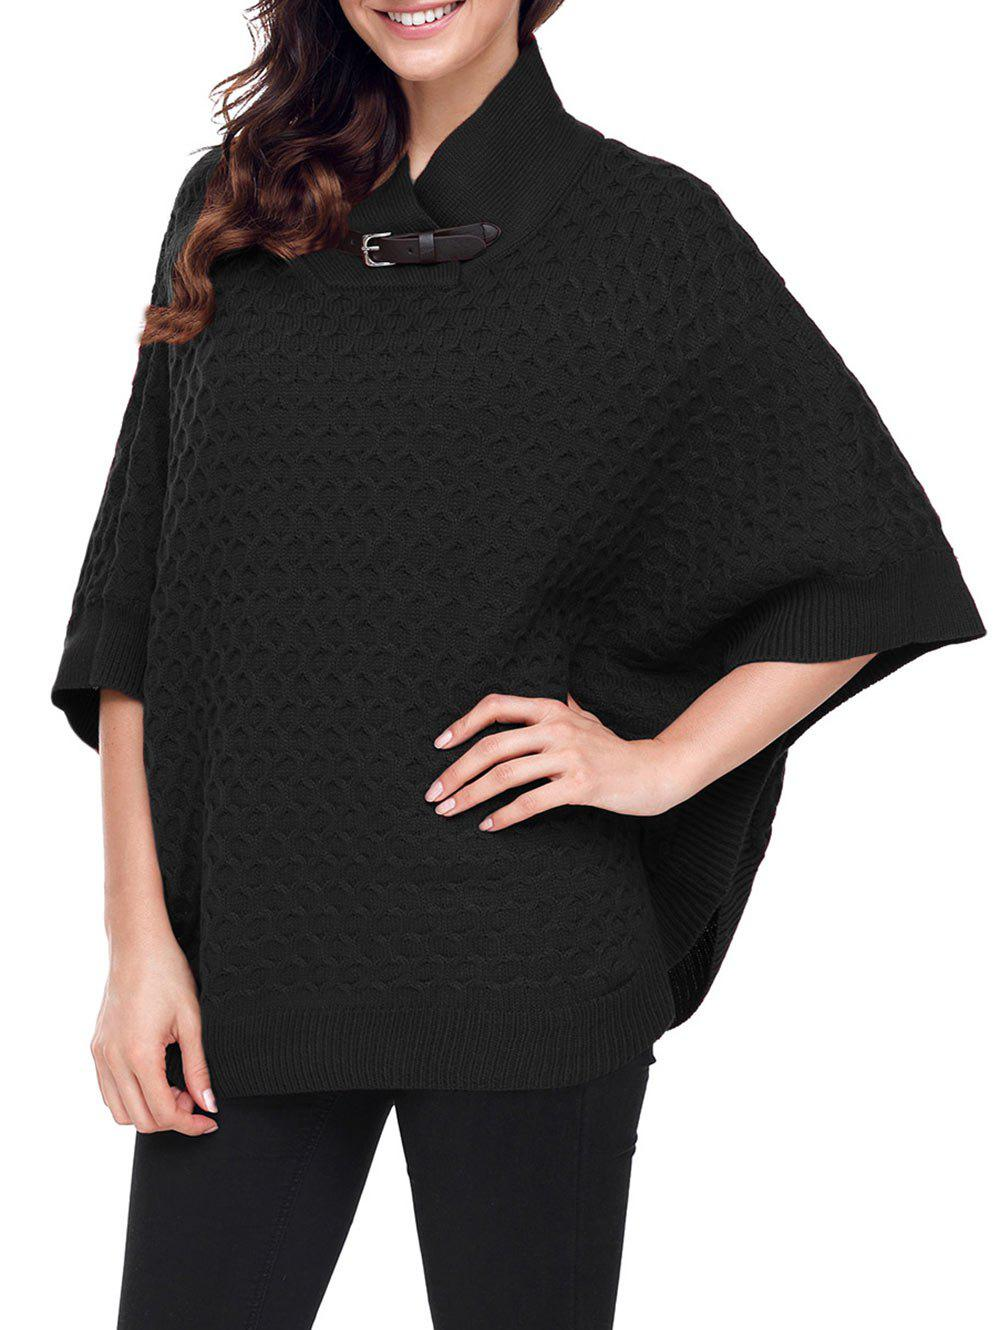 New Buckle Strap Knitted Cape Sweater